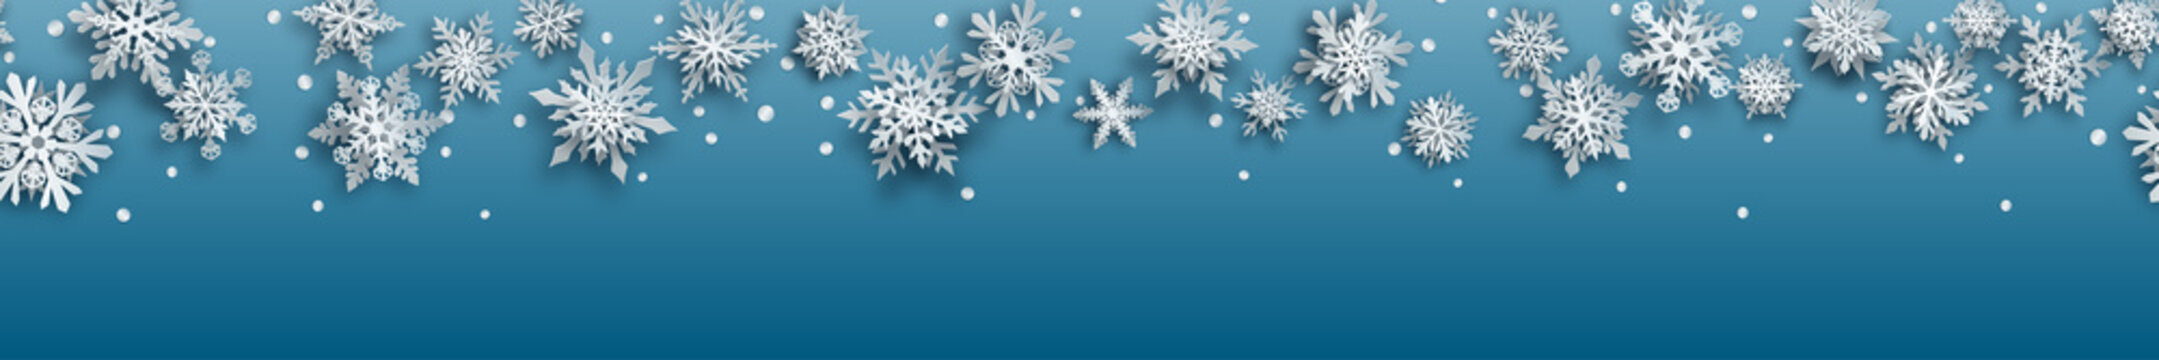 Christmas banner of white complex paper snowflakes with soft shadows on light blue background. With horizontal repetition